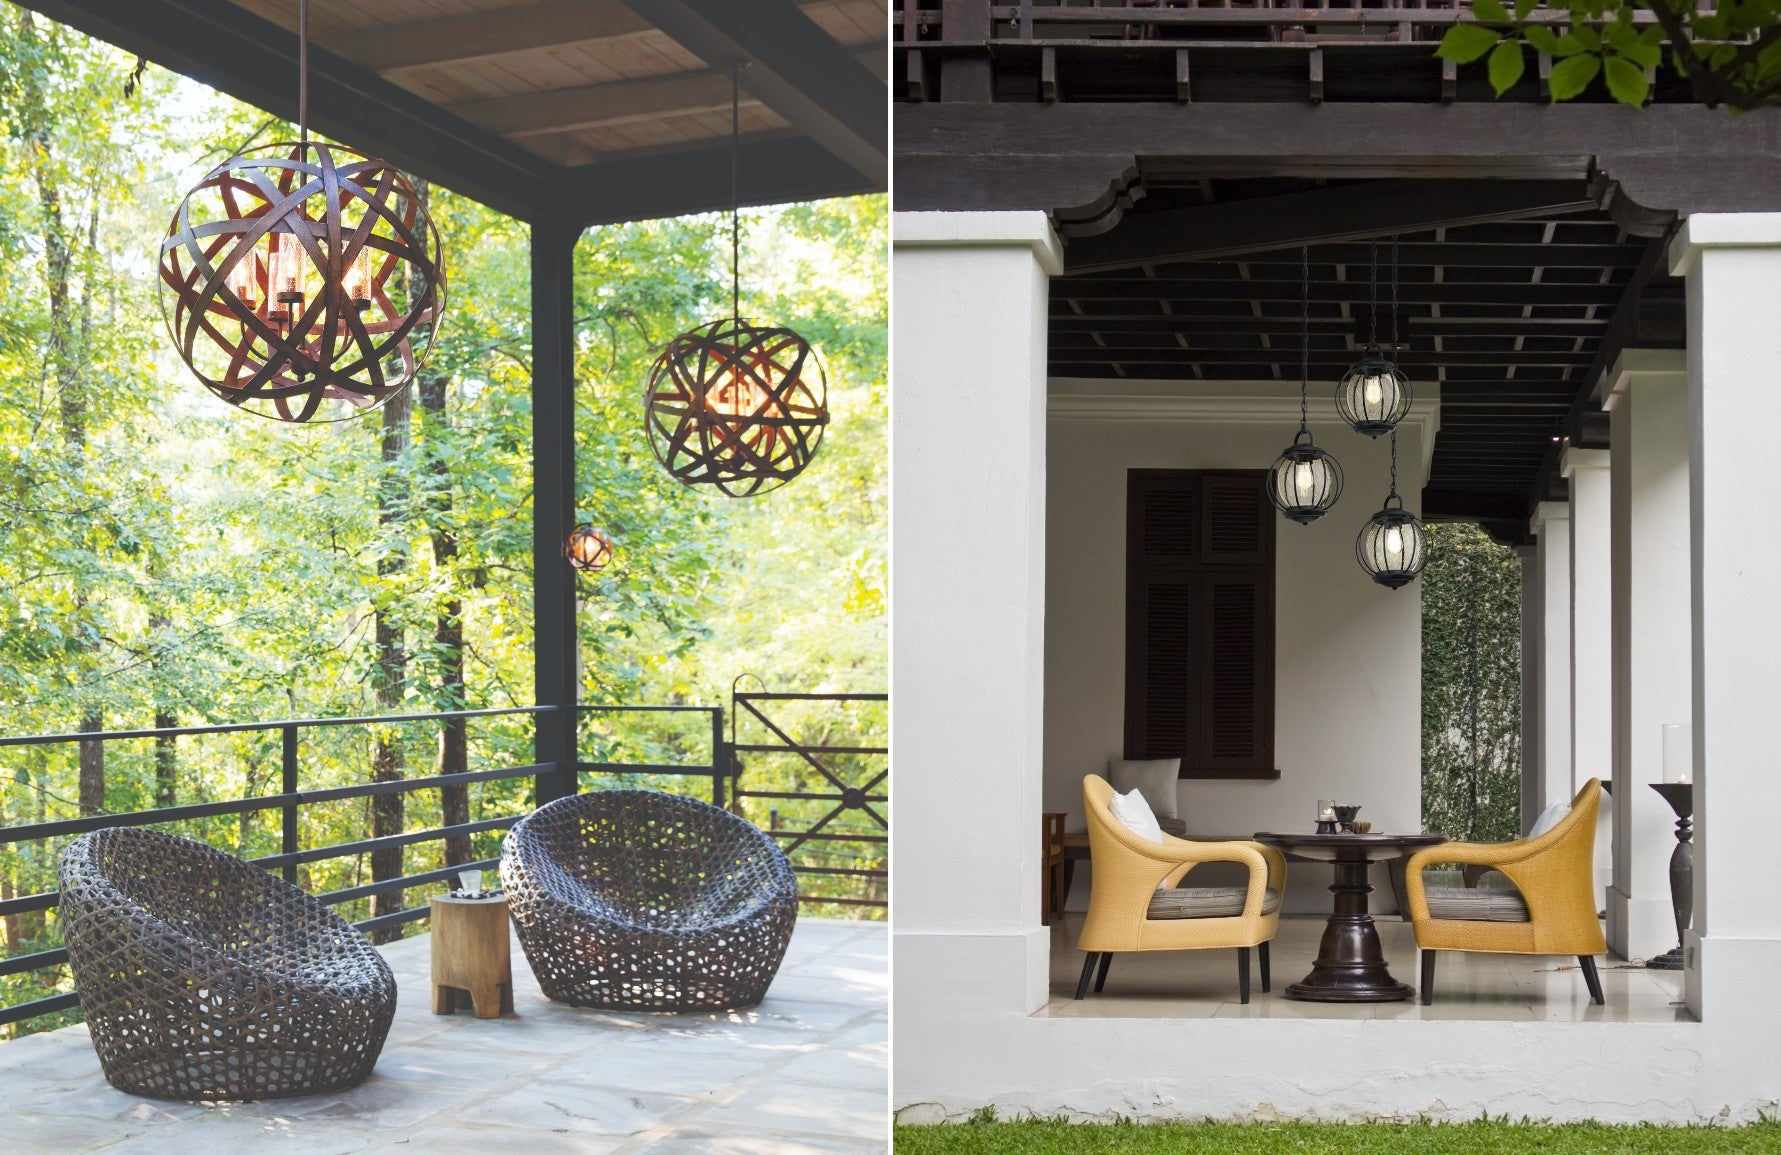 Outdoor hanging Lights - 8 Outdoor Lighting Ideas to Illuminate Your Garden - LuxDeco.com Style Guide